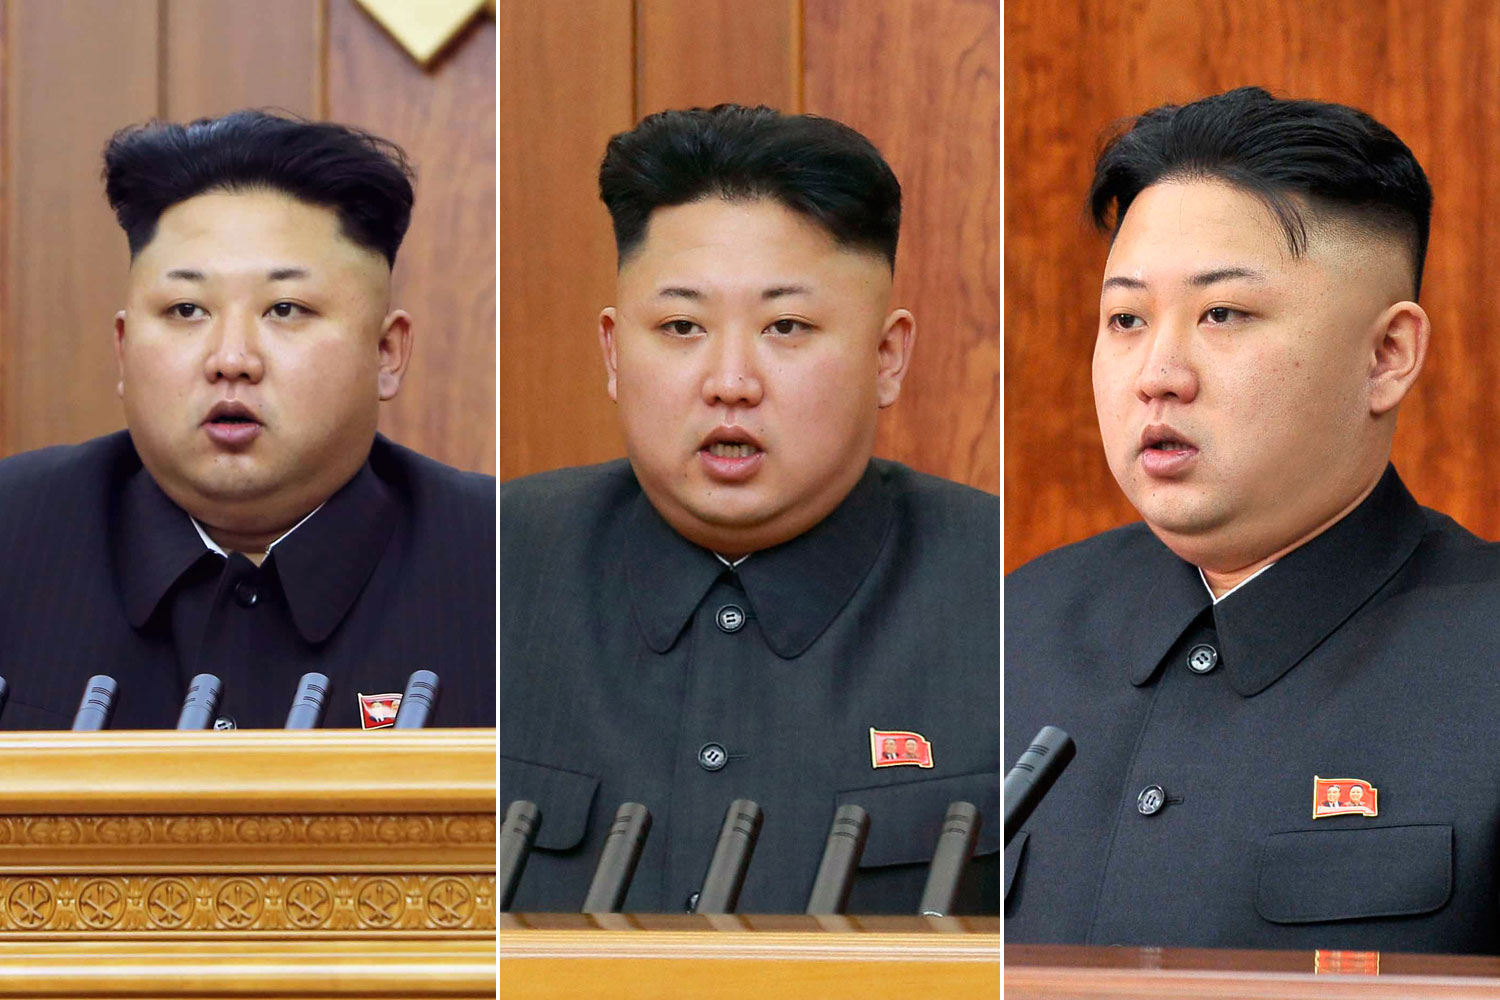 From left: Kim Jong Un delivers a New Year's address on Jan. 1, 2015, Jan. 1, 2014, and Jan. 1, 2013.